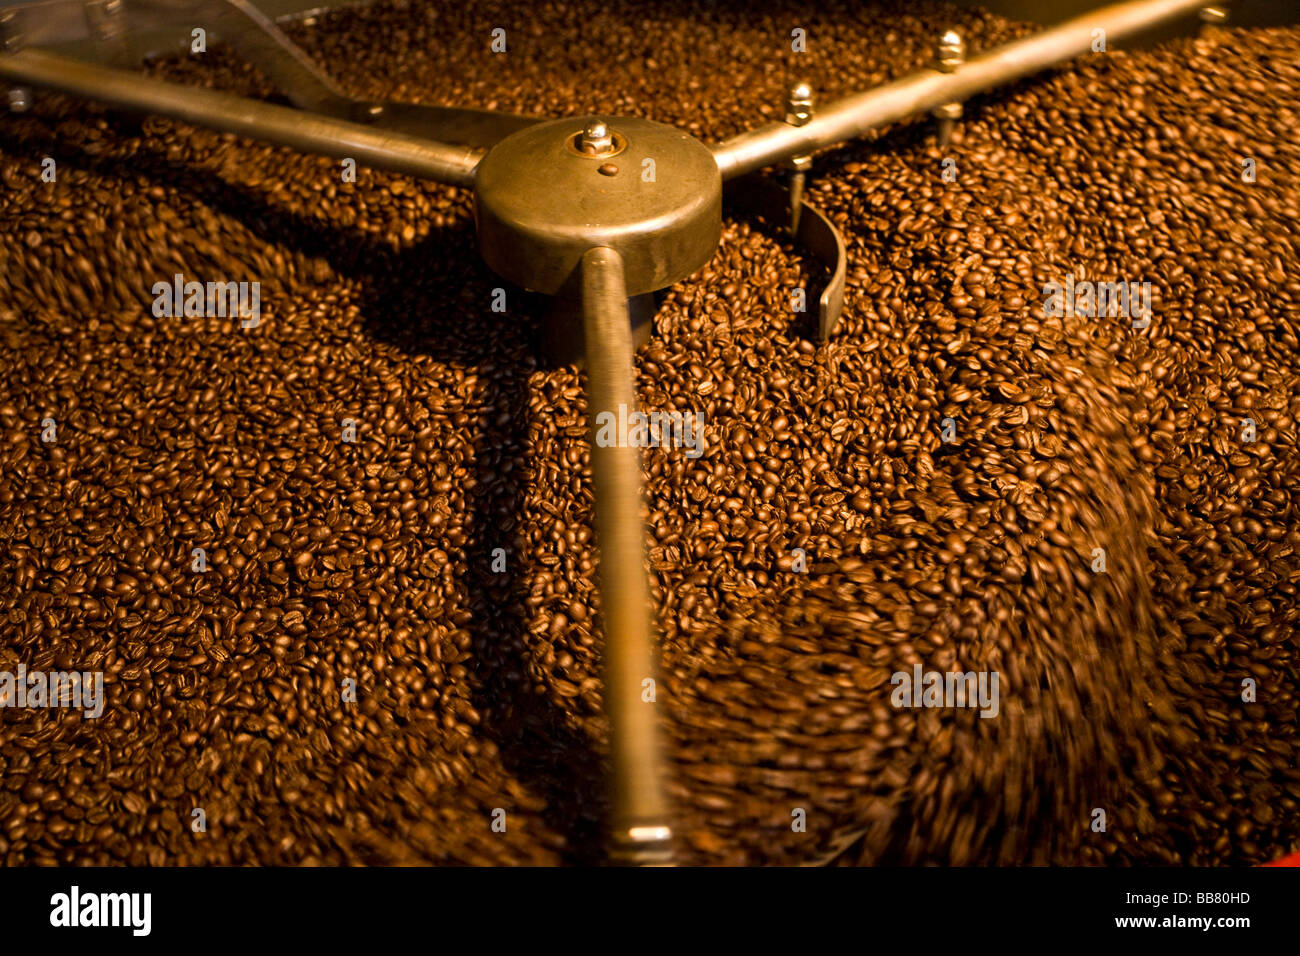 Andraschko Coffee Manufacturers, coffee roasters, Berlin, Germany - Stock Image